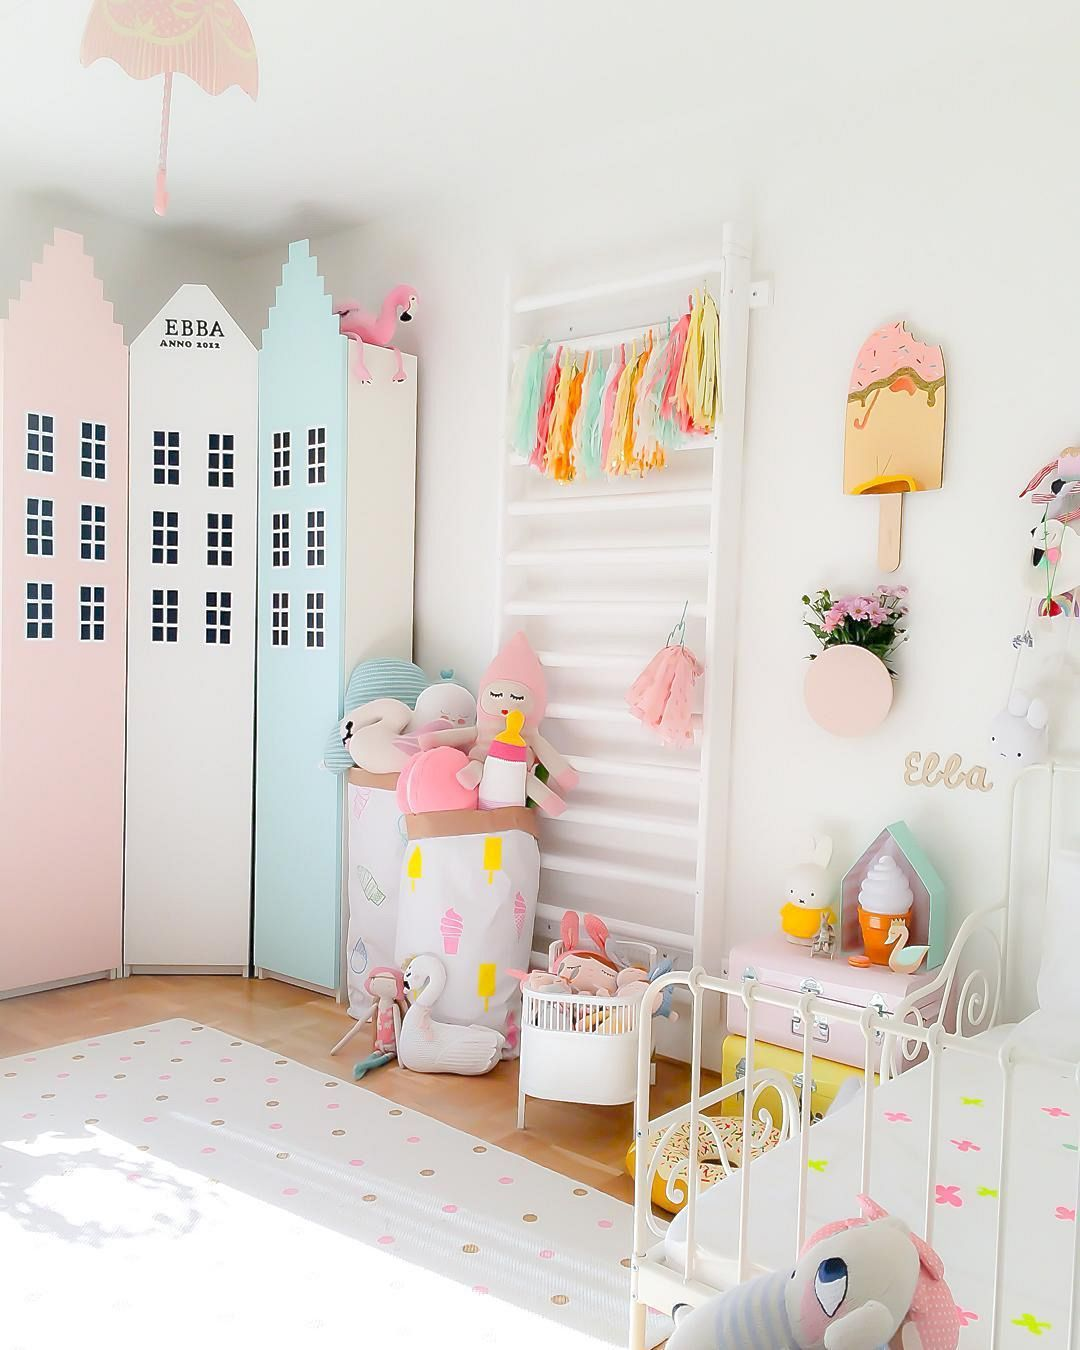 100 Beautiful Kids Bedroom Decoration Ideas https://www ... on fall kitchen, pink bedroom, lighting ideas bedroom, green paint bedroom, window treatments bedroom, orange bedroom, red bedroom, design ideas bedroom, home decor ideas bedroom, ikea ideas bedroom, organization ideas bedroom, fall room decor, diy ideas bedroom, fall inspired bedrooms, halloween bedroom, ikat bedroom, aqua bedroom, thanksgiving bedroom, paint ideas bedroom, ottoman bedroom,